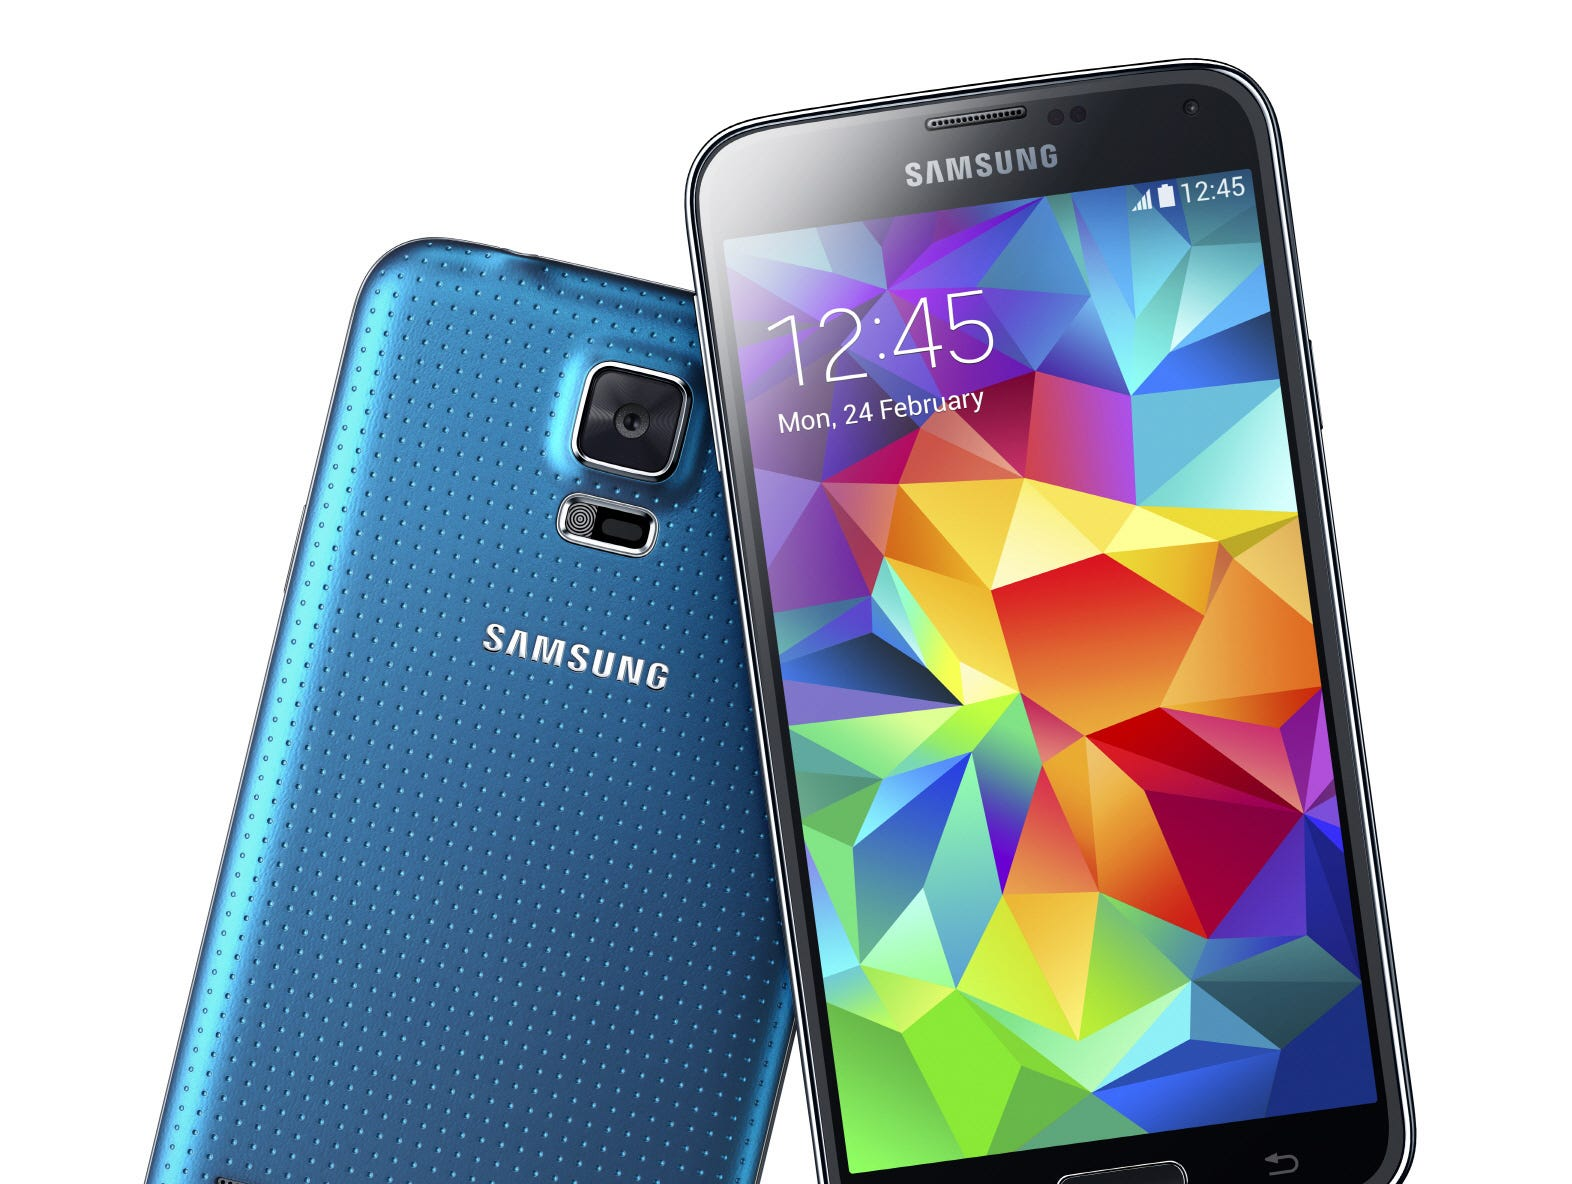 The Samsung Galaxy S5 smartphone was announced in February 2014. It featured a plastic, water resistant design, 5.1-inch screen and 16 megapixel rear camera. It also was the first Galaxy S phone with a heart rate monitor.